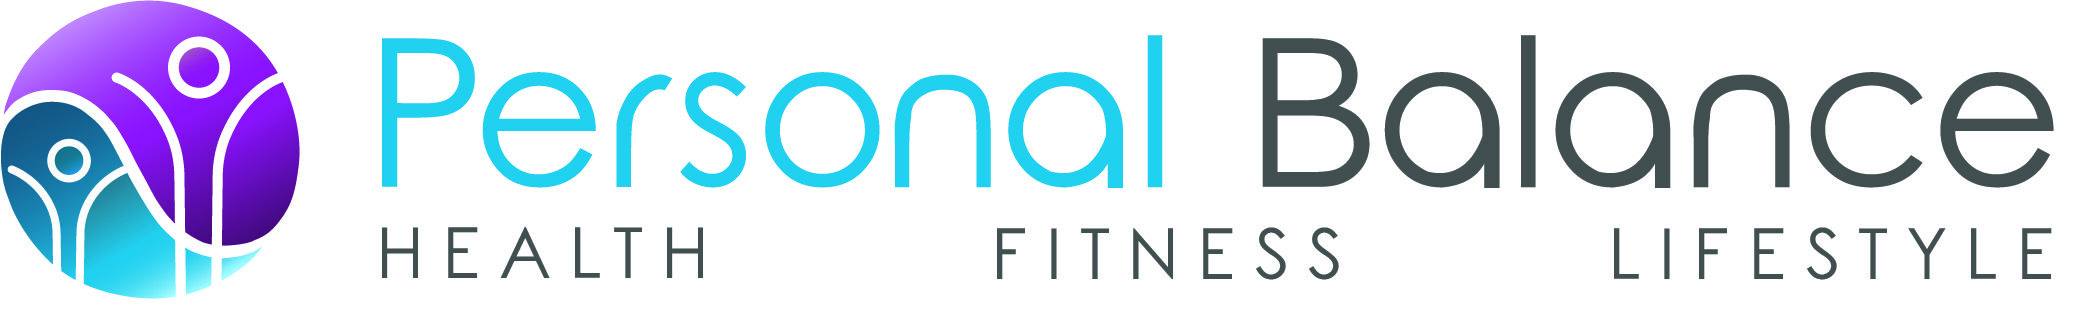 Pre Natal and Post Natal Fitness – Personal Balance